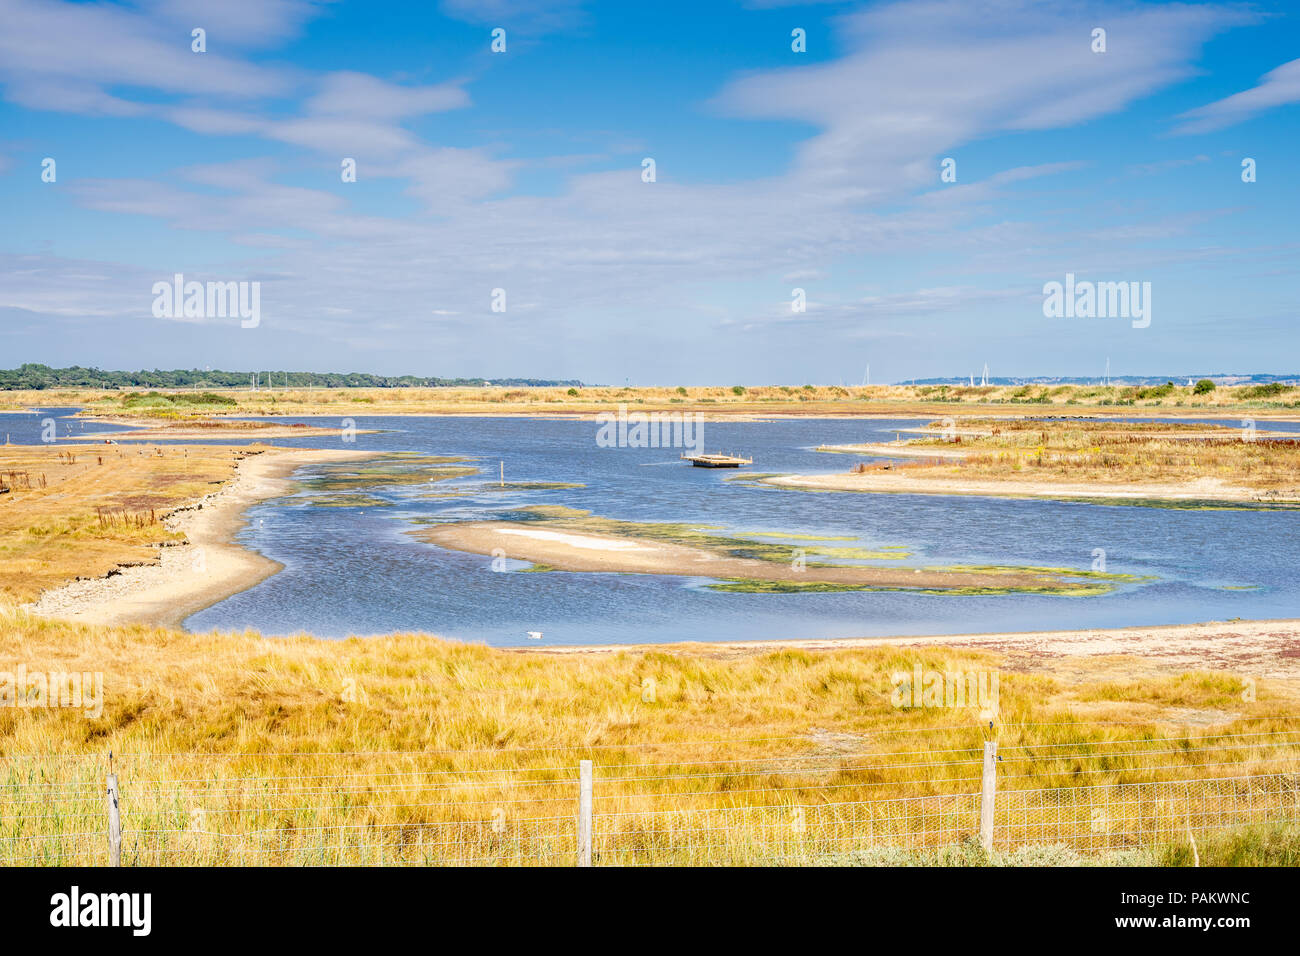 View over Lymington and the Keyhaven Marshes Nature Reserve during very dry weather conditions in July 2018, Lymington, Hampshire, England, UK - Stock Image